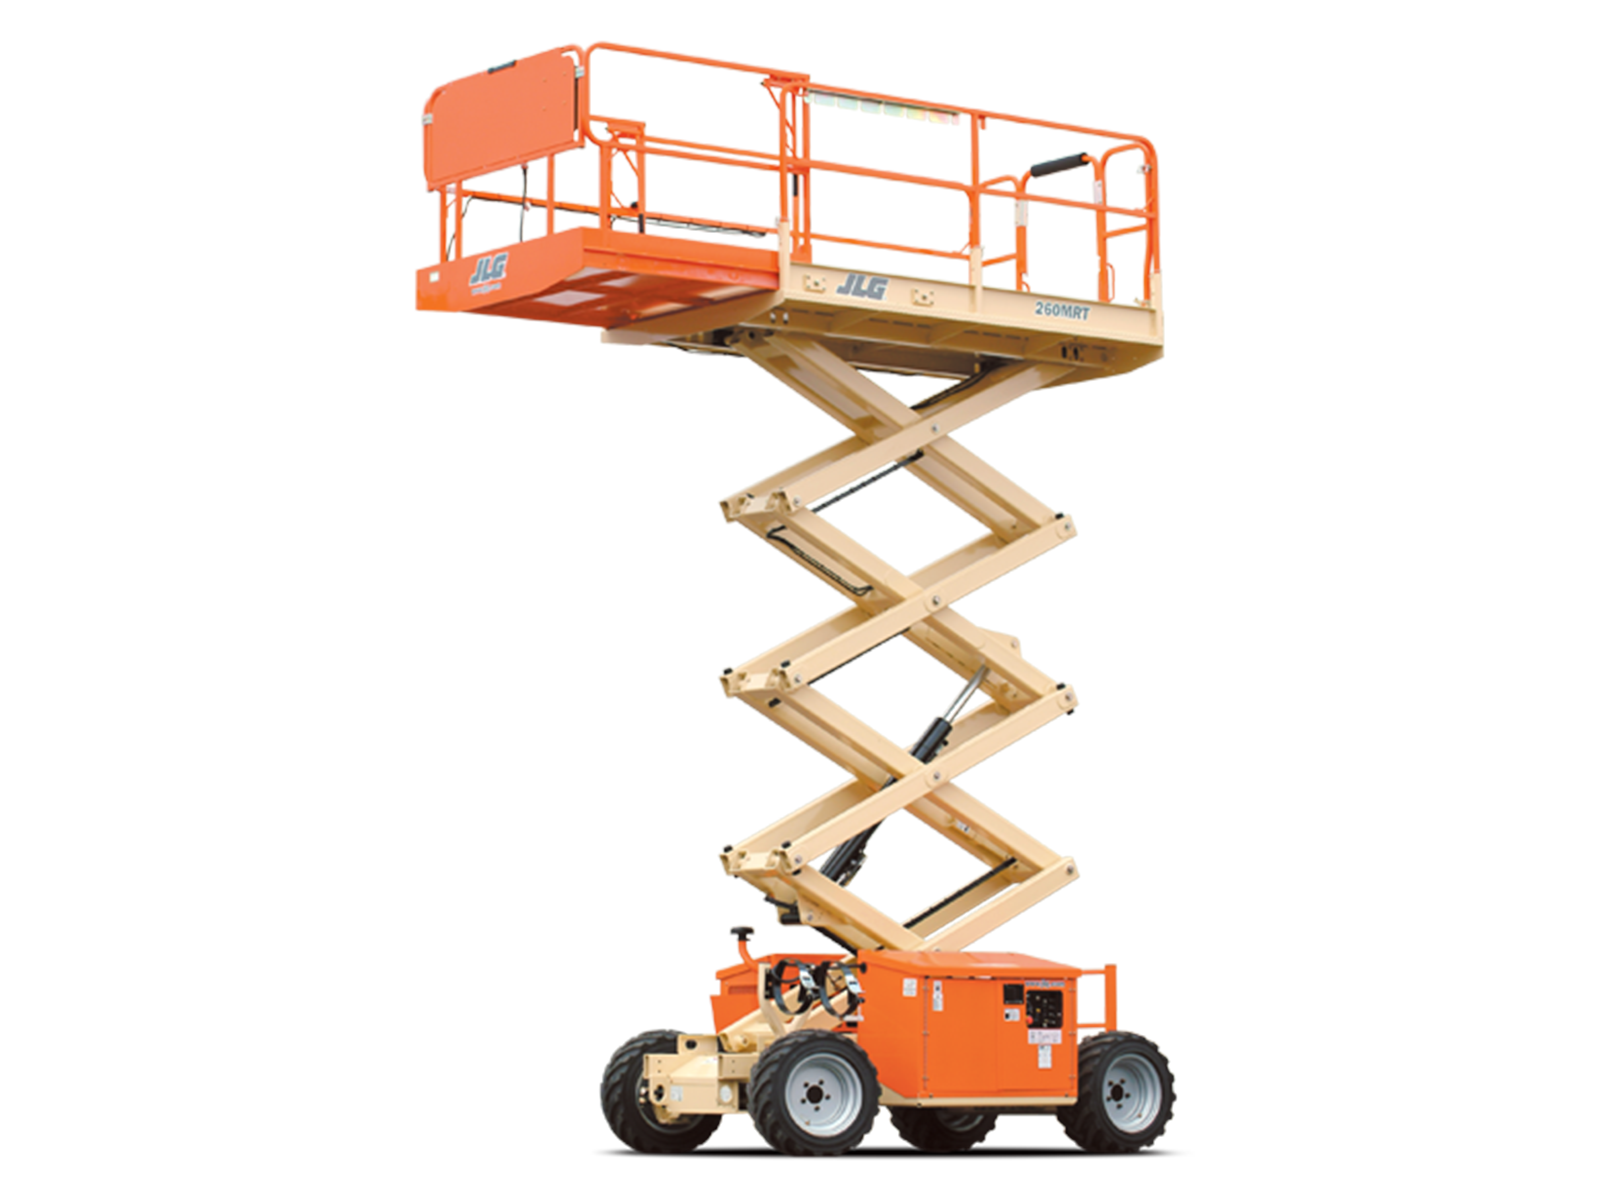 260mrt gallery silo?mwd450 upright scissor lift sl 20 wiring diagram efcaviation com snorkel lift 41e wiring diagram at bayanpartner.co